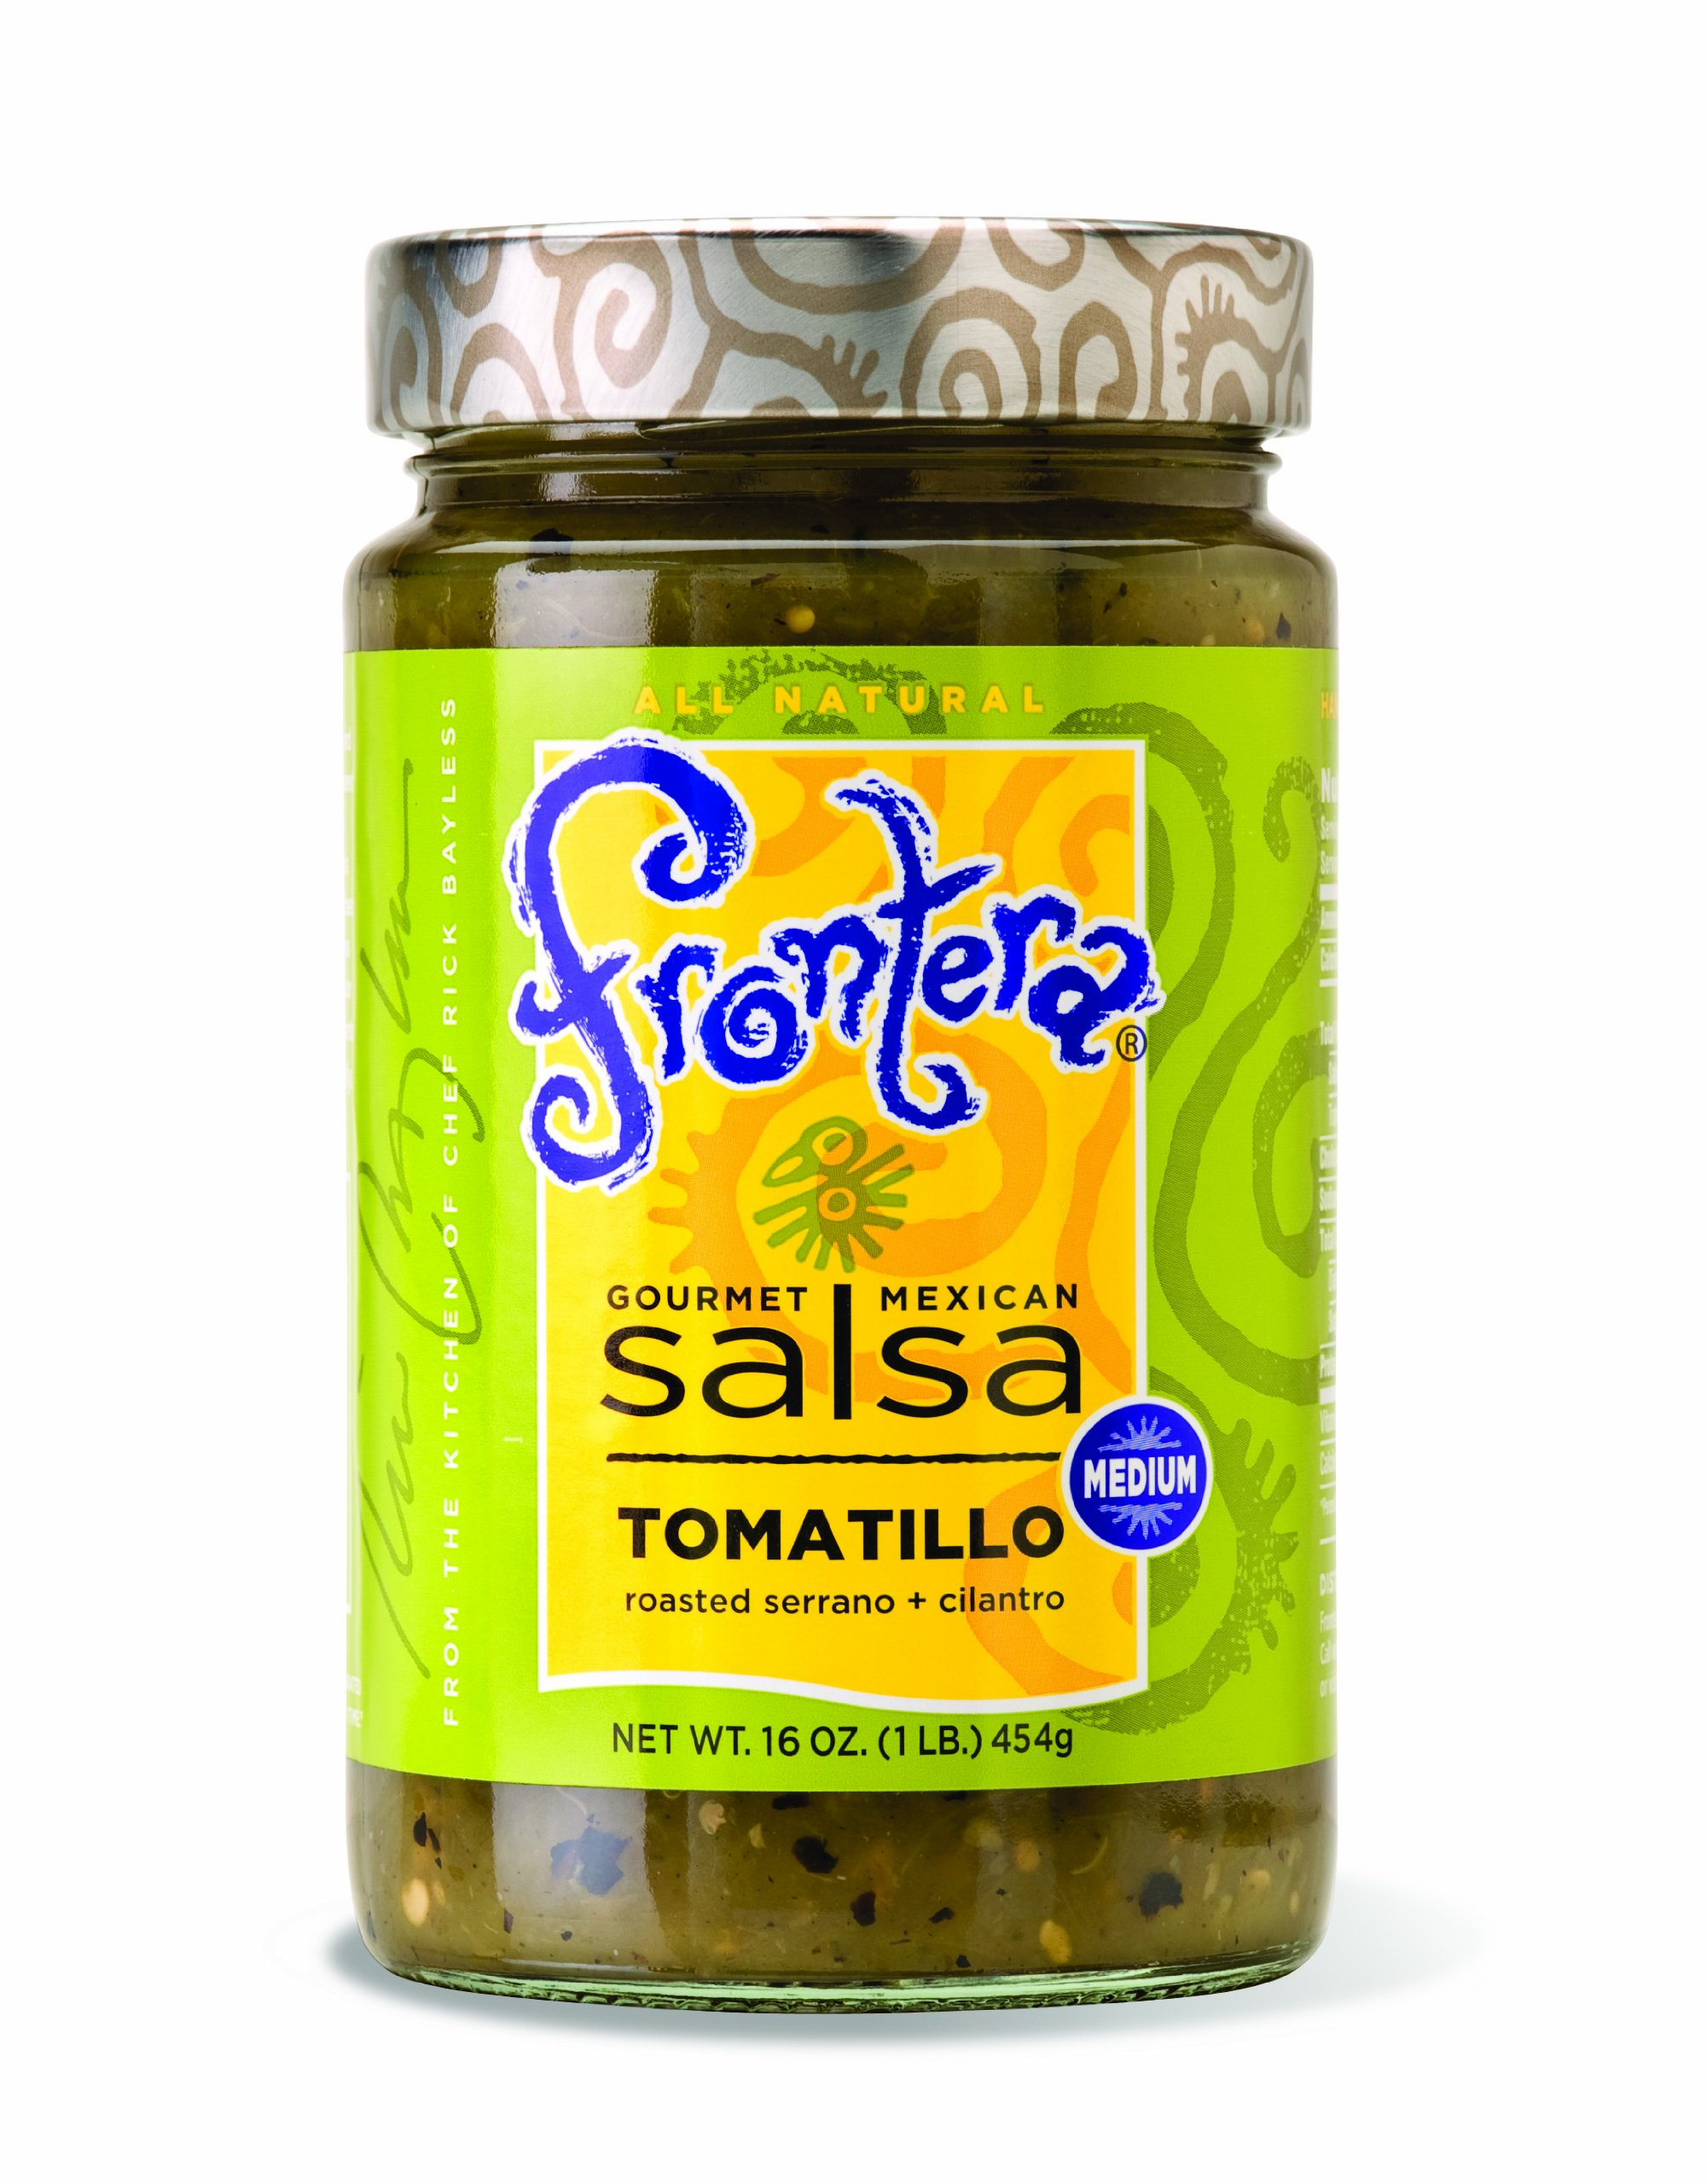 Frontera Tomatillo Salsa, 16-Ounce Units (Pack of 6) by Frontera